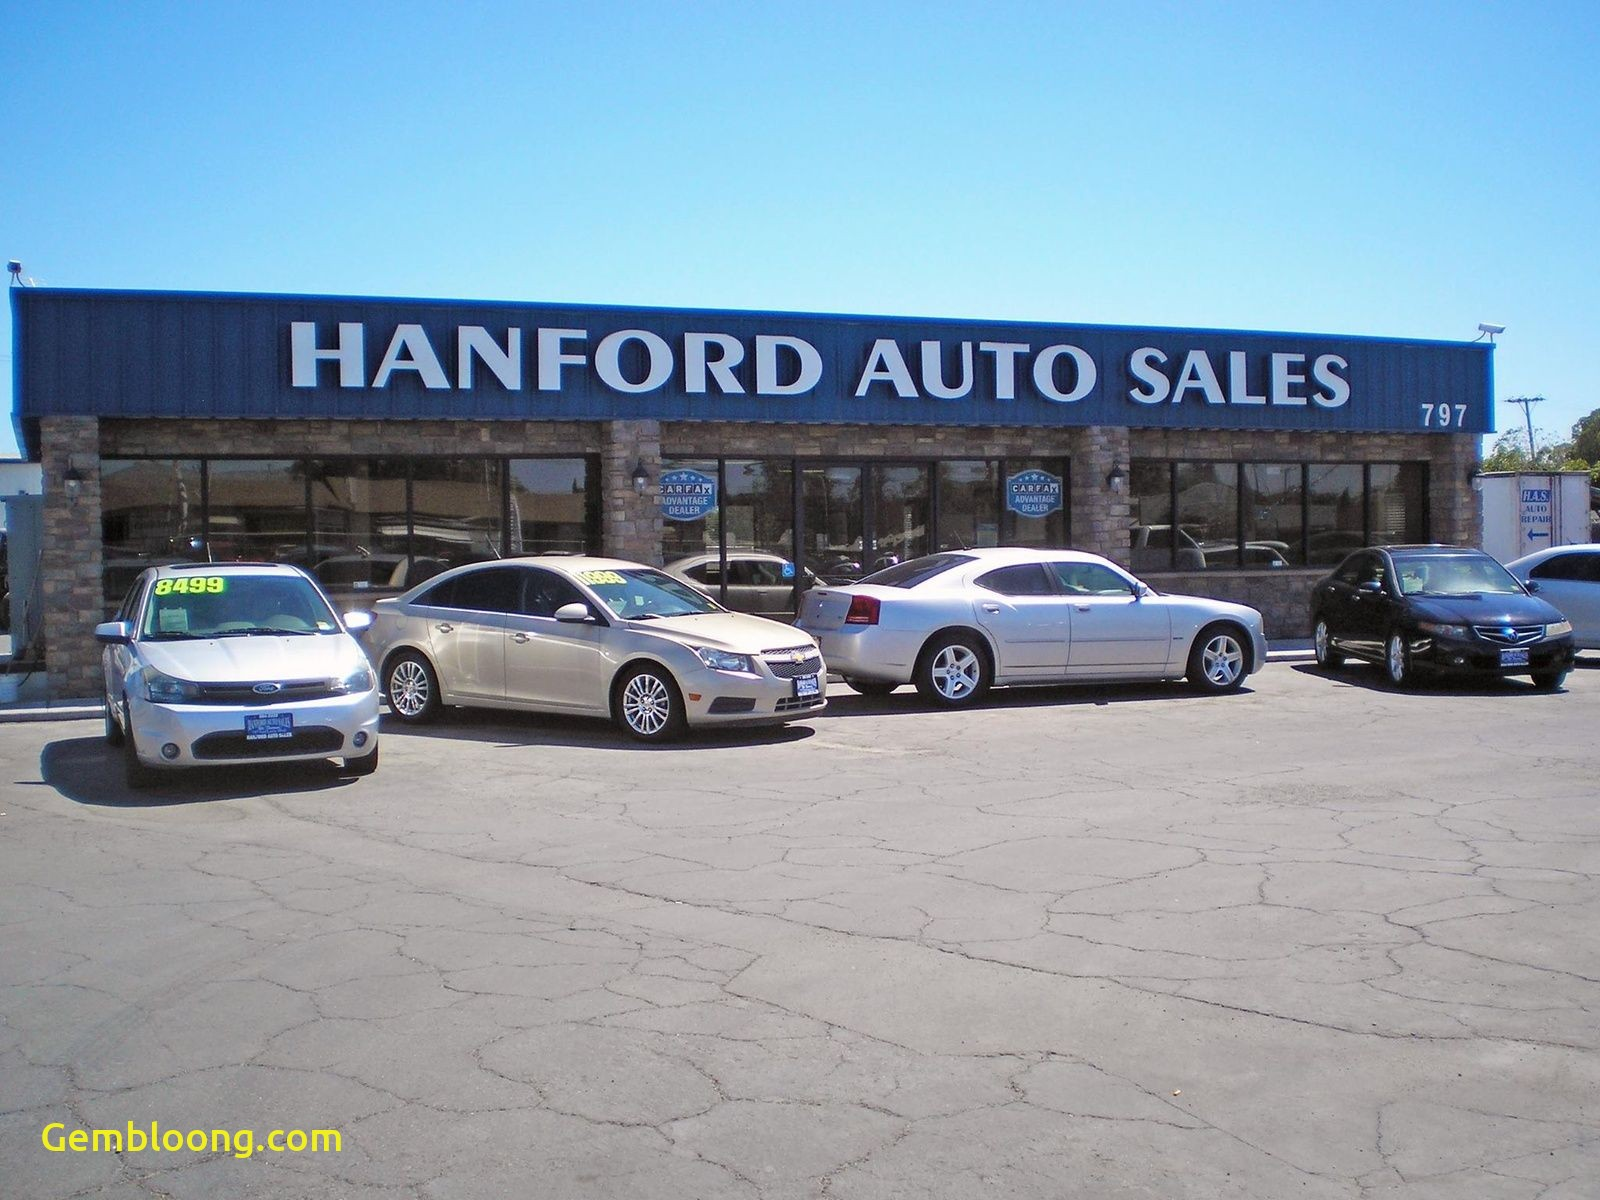 Cheap Used Cars for Sale Near Me Under 1000 Awesome Cars for Sale Under Cargurus Best Hanford Auto